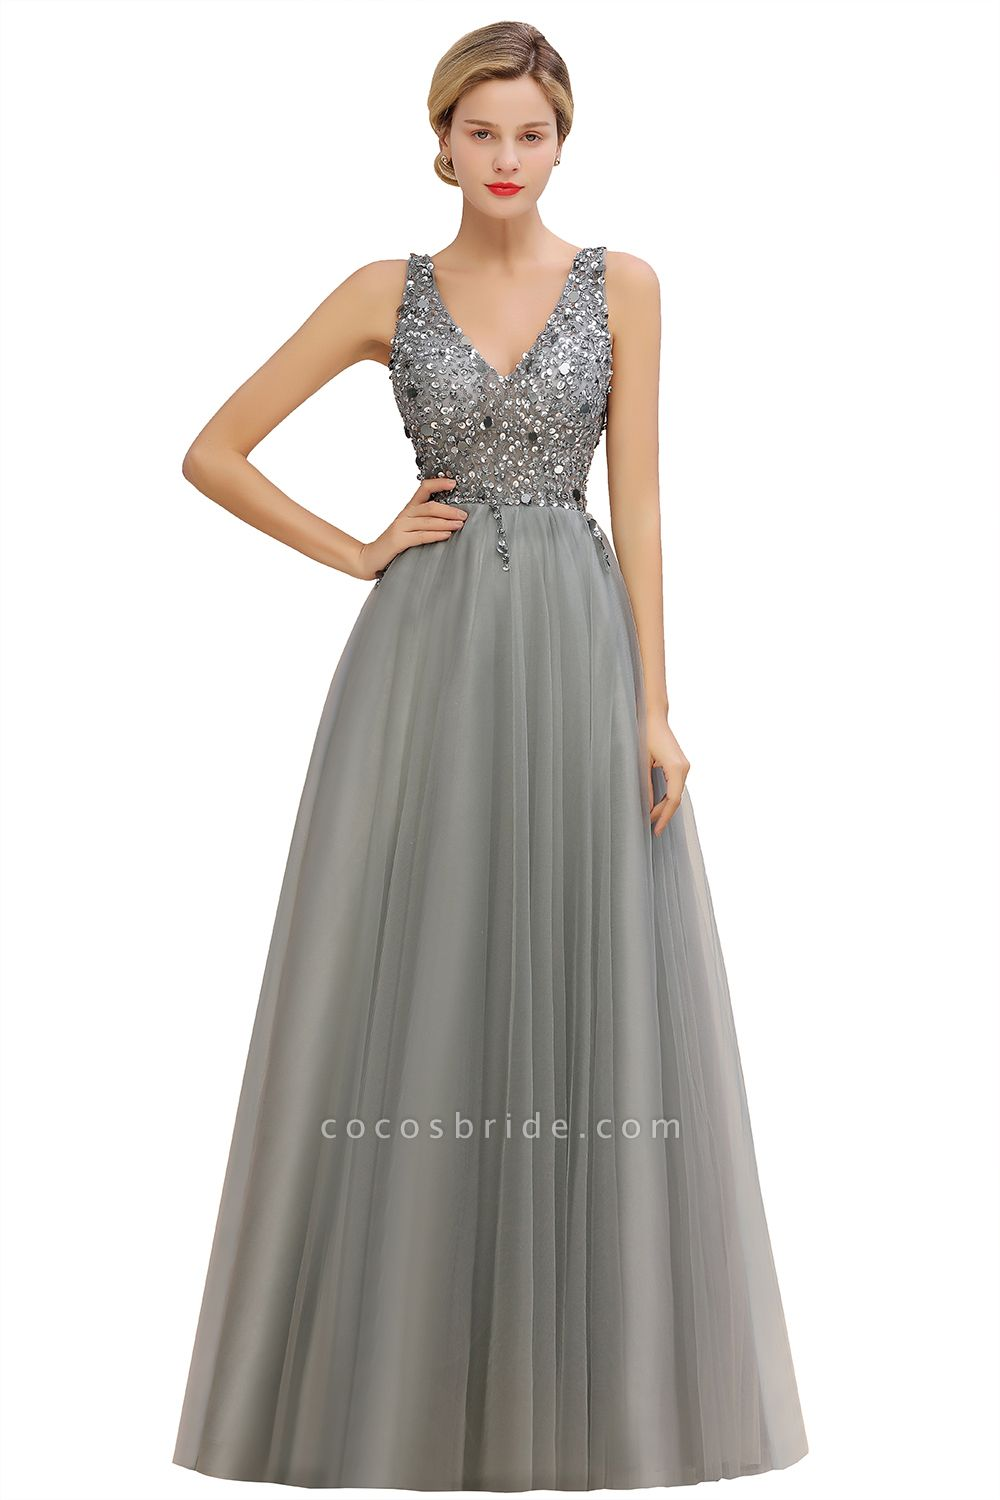 Fabulous V-neck Tulle A-line Prom Dress